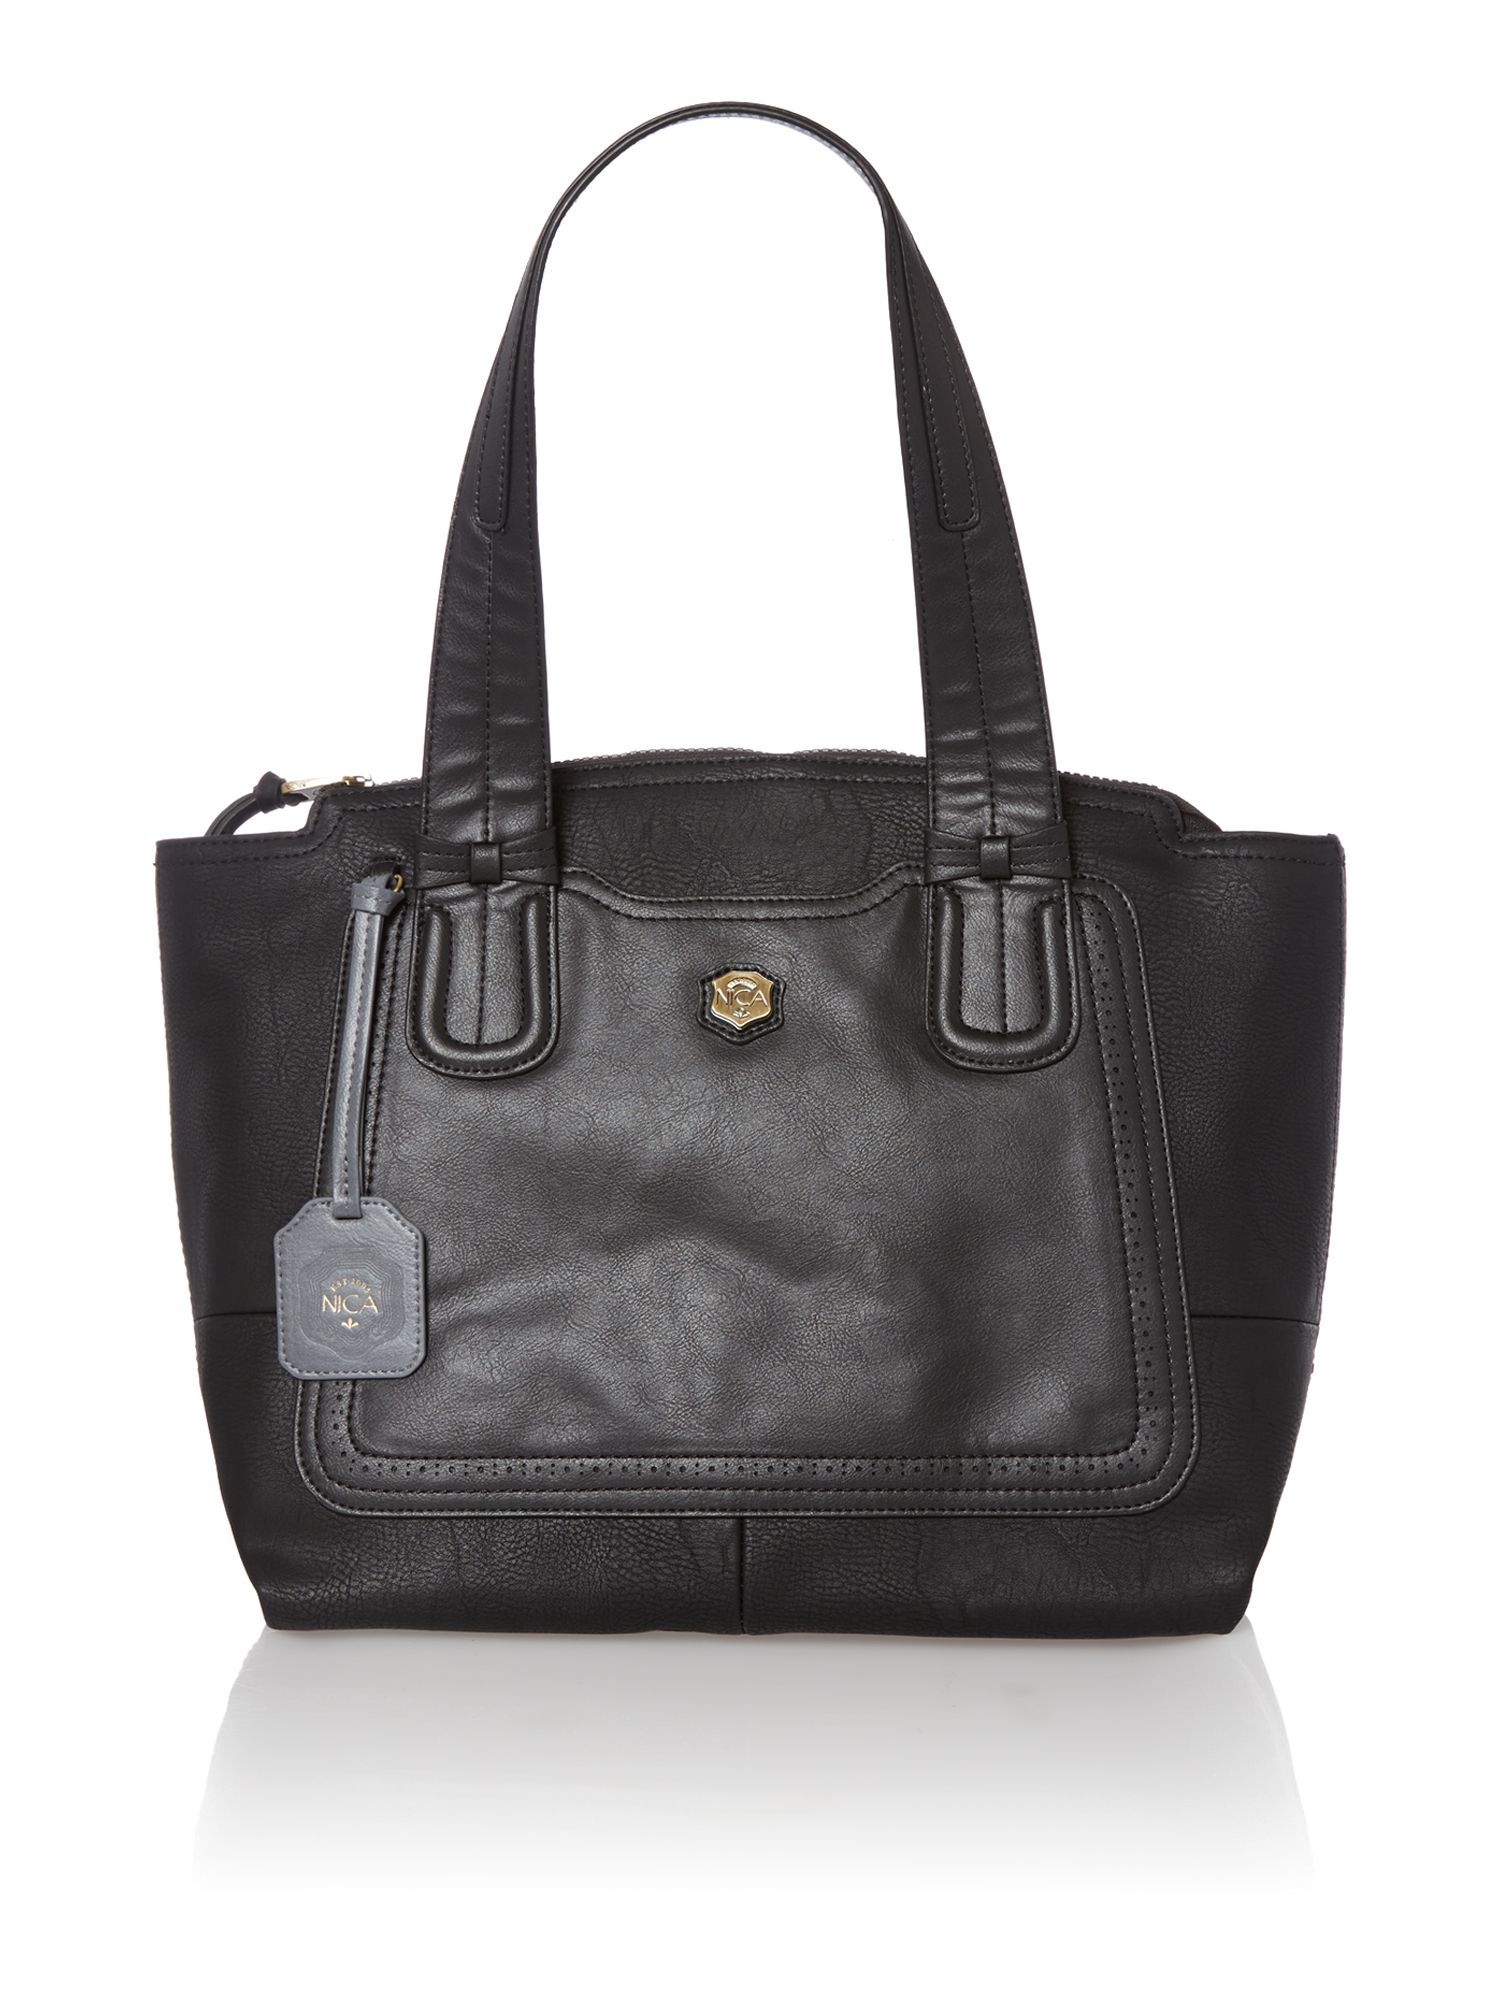 Celina black tote bag